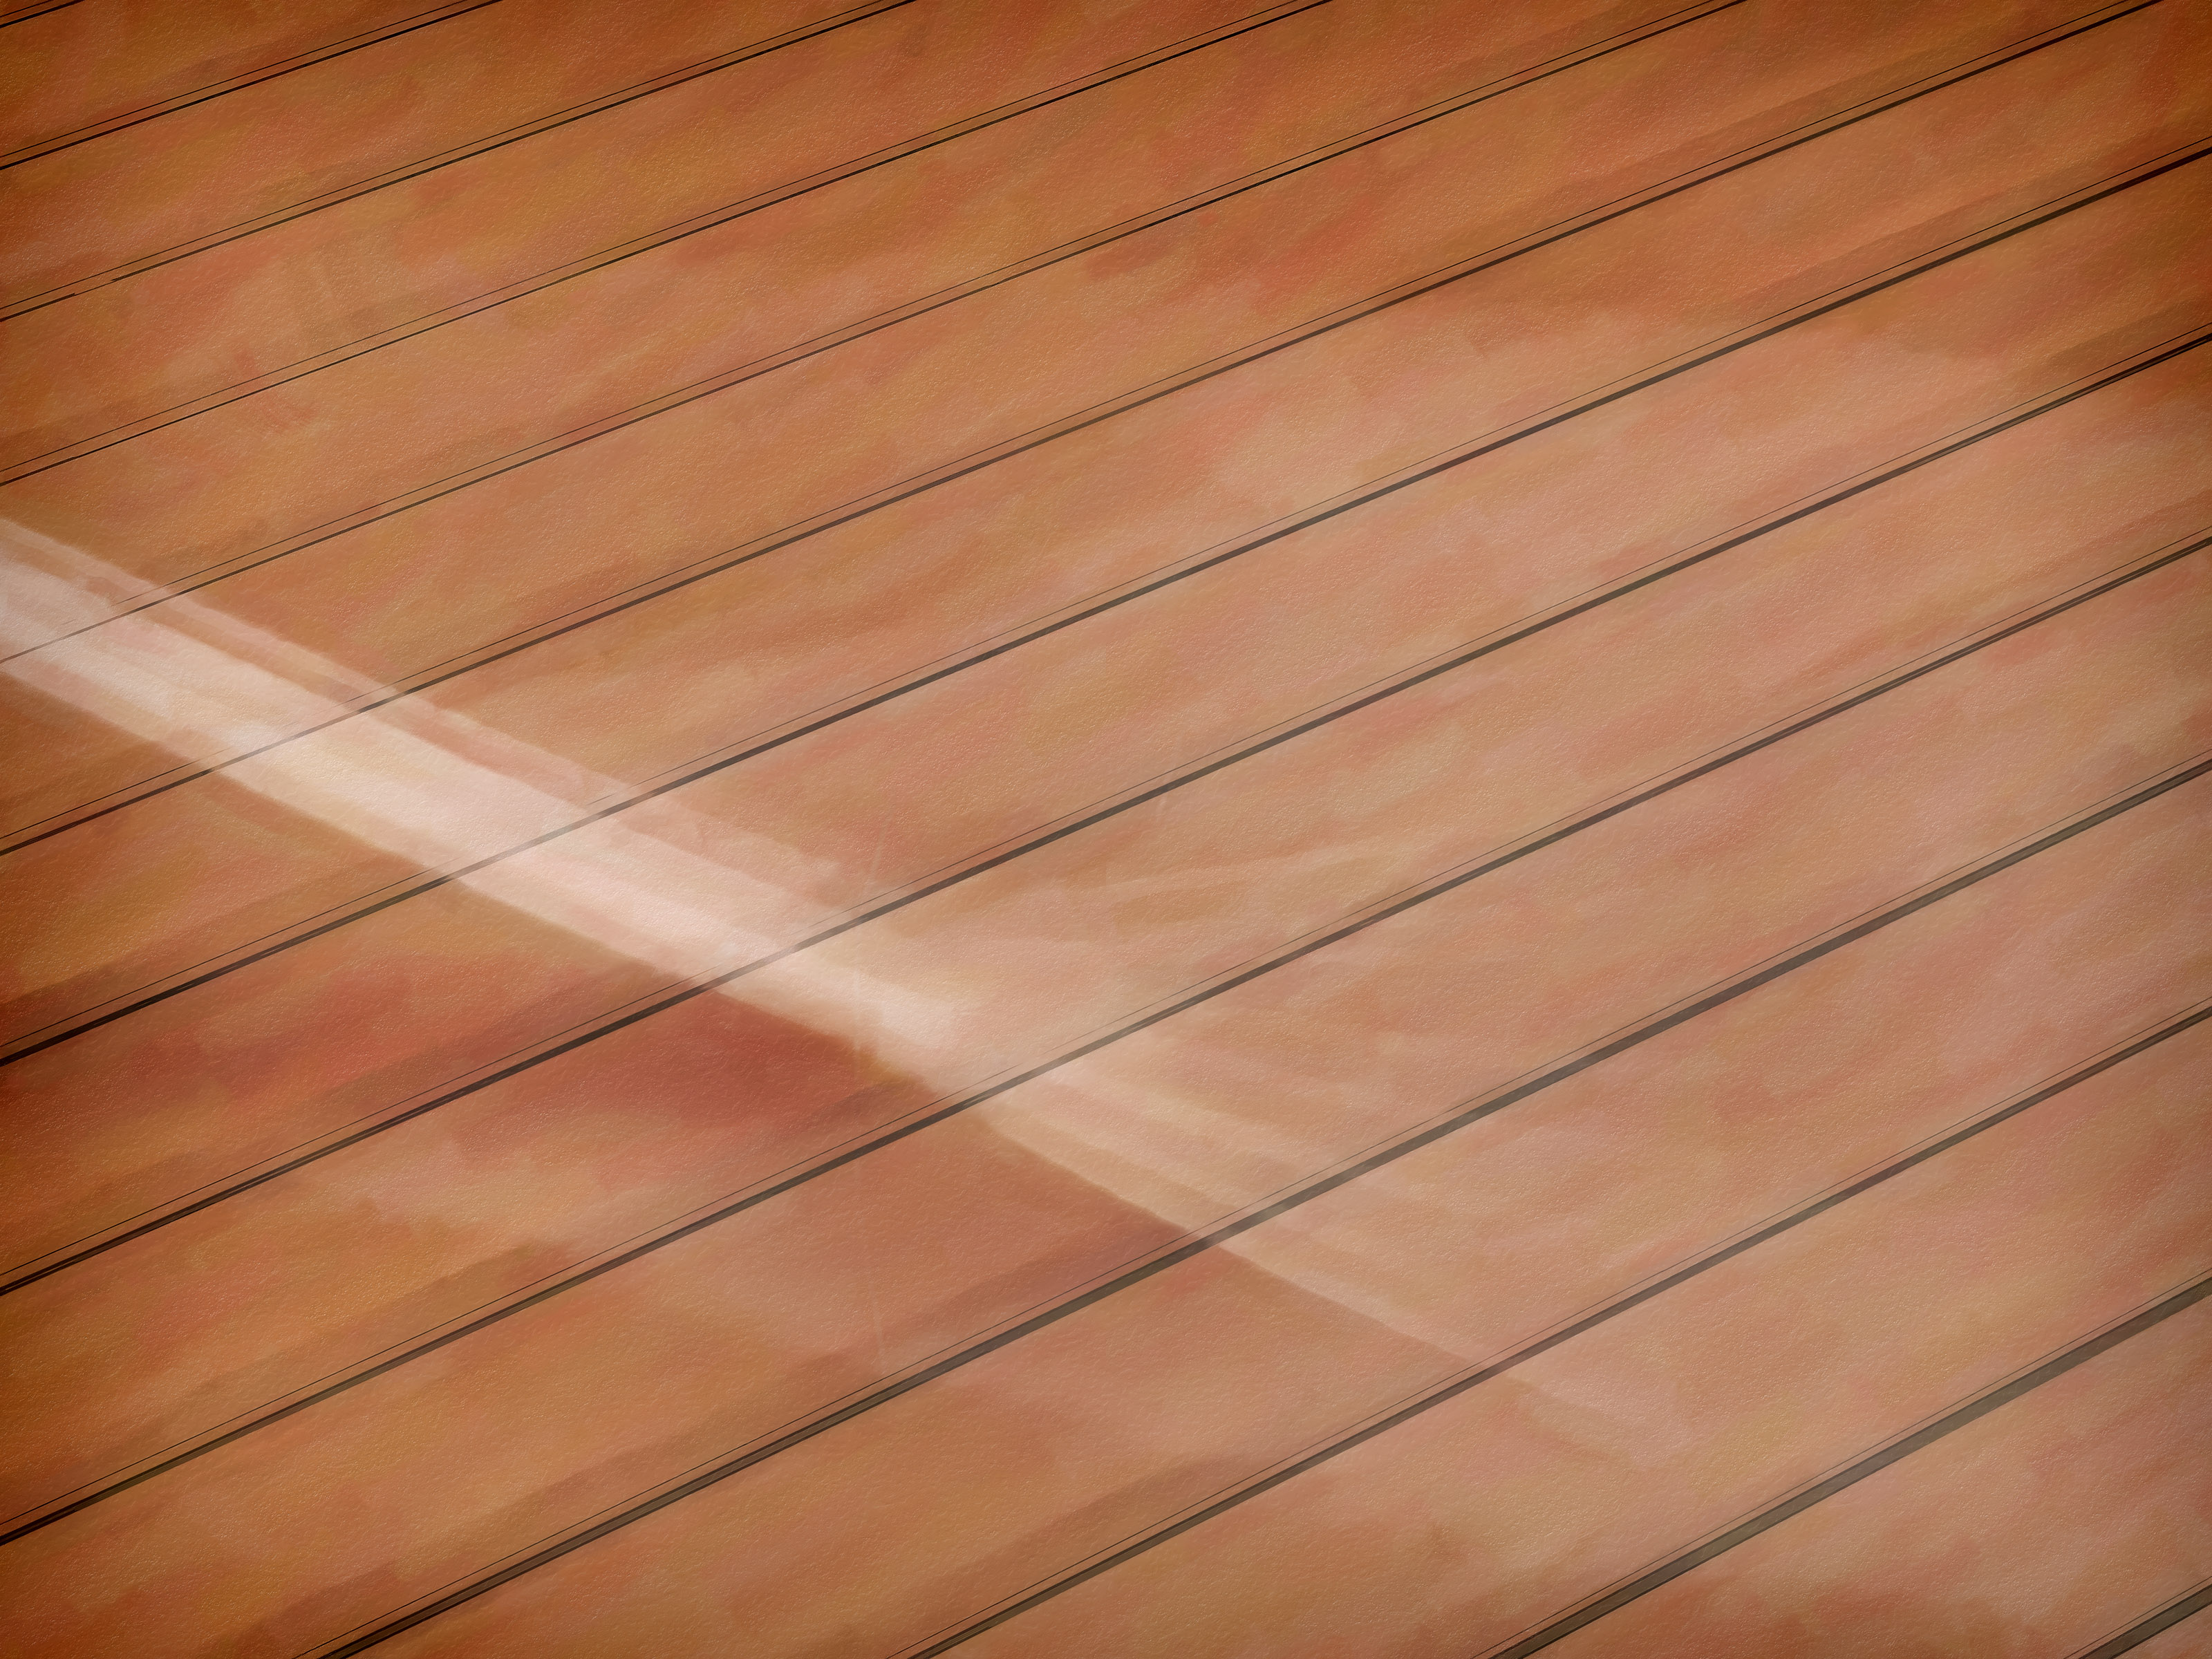 Synthetic Deck Boards How To Clean A Trex Deck 10 Steps With Pictures Wikihow